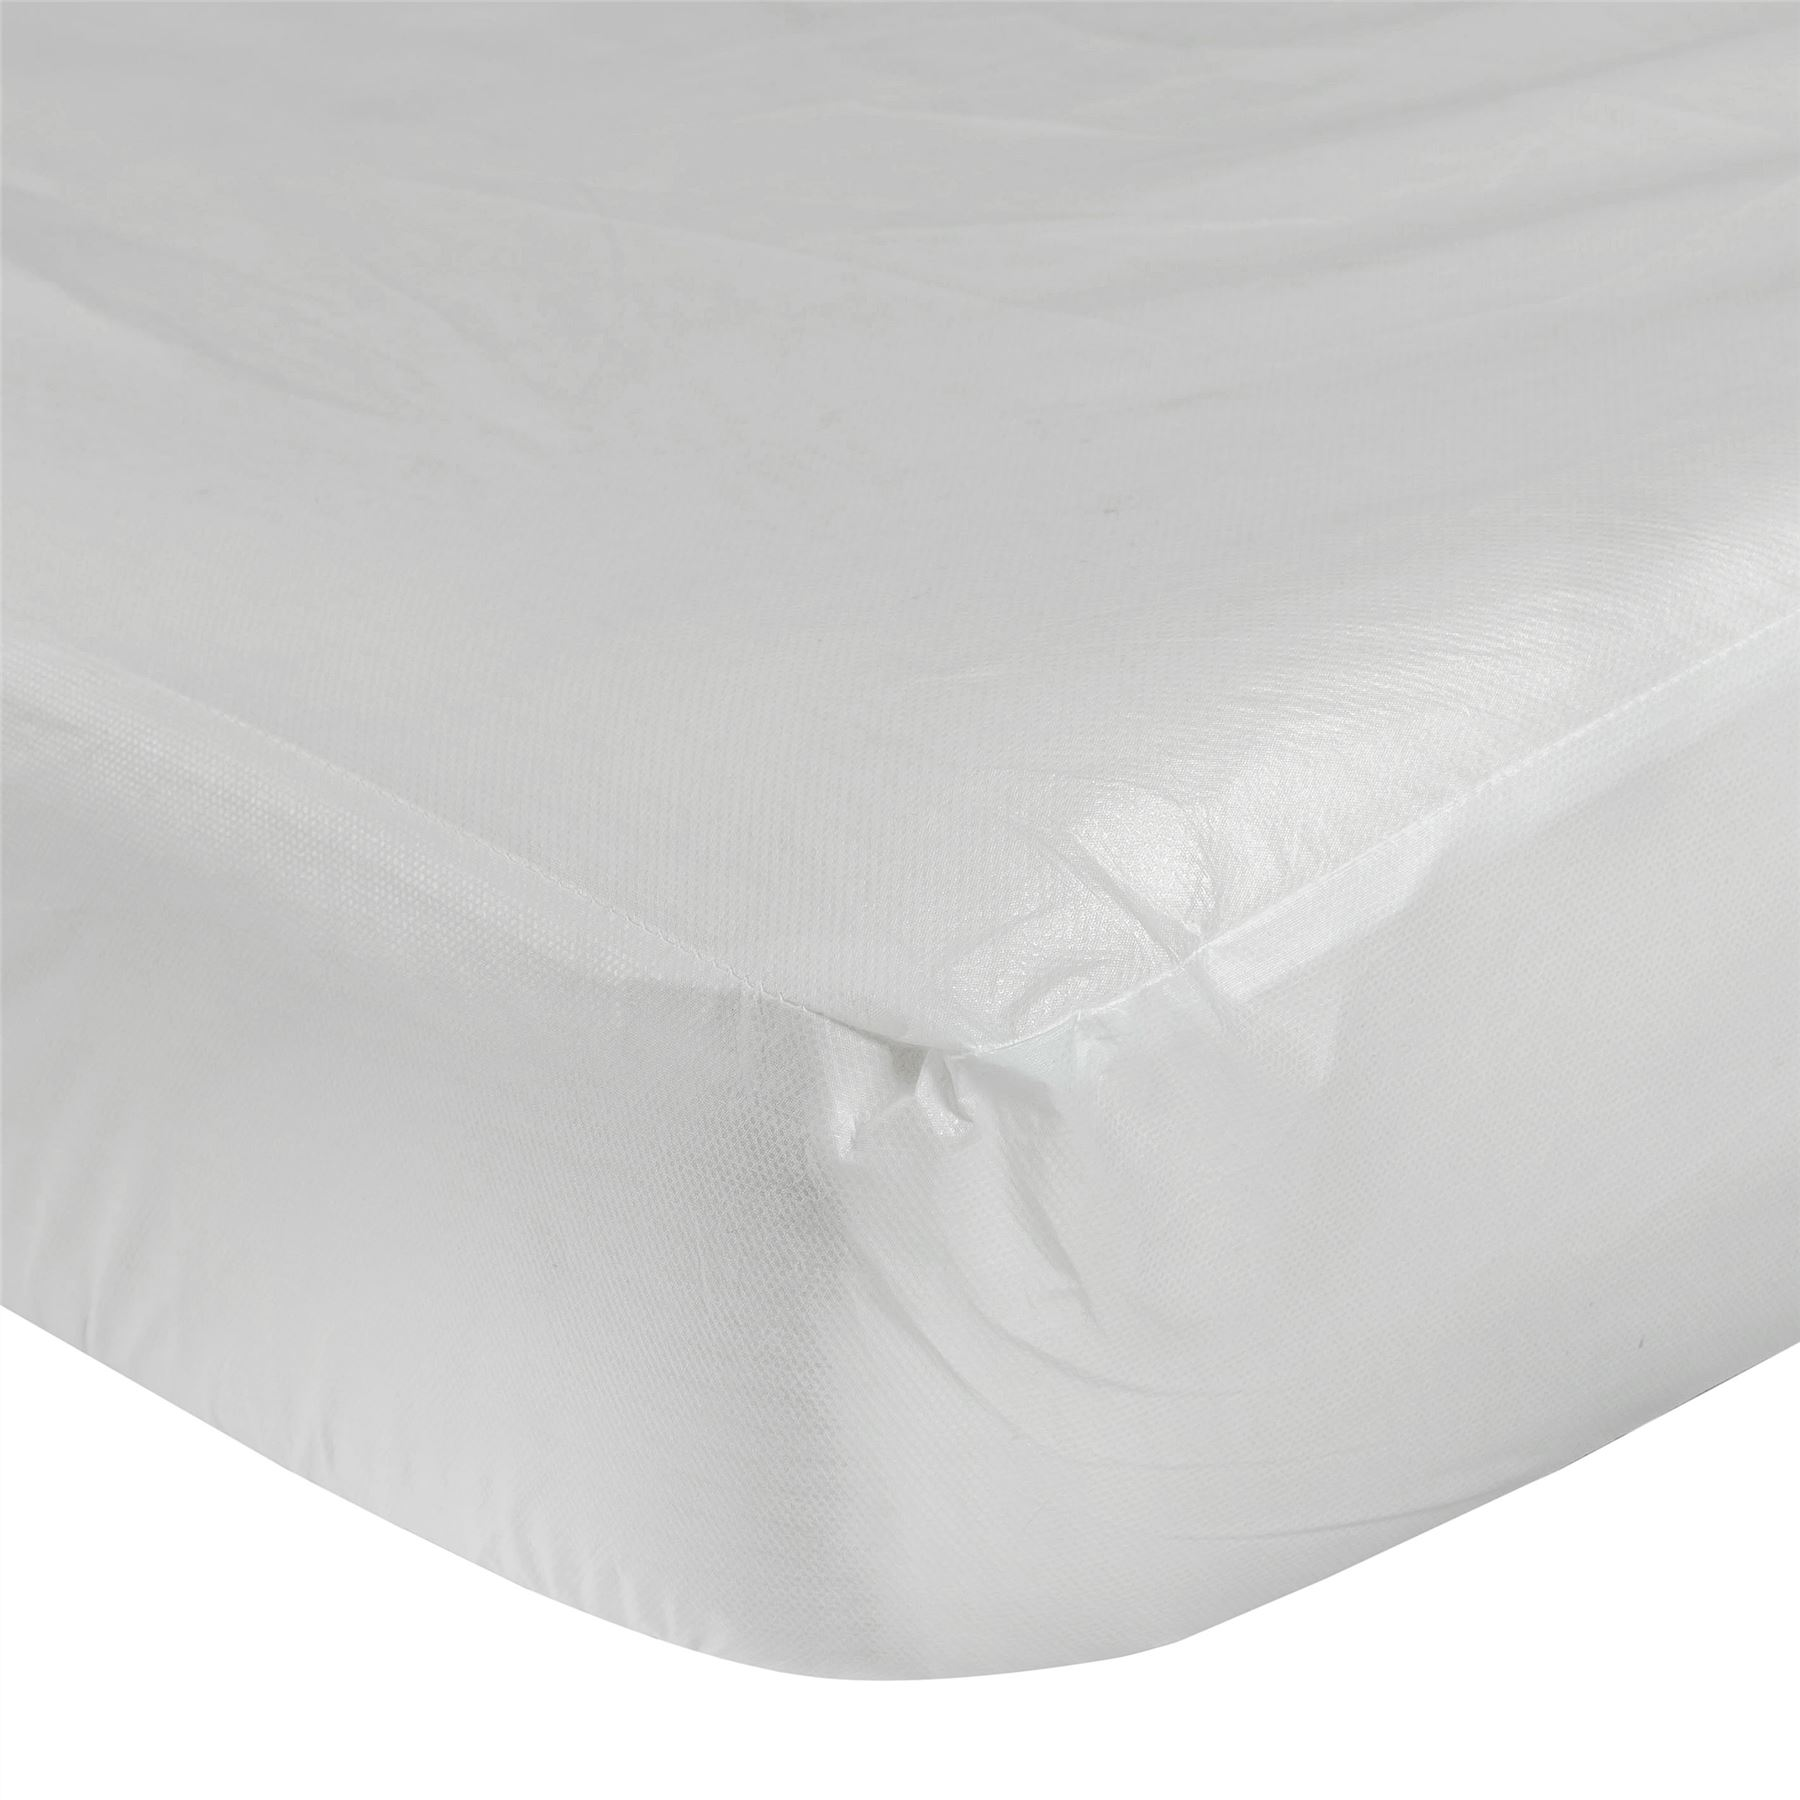 protect a bed mattress protector washing instructions